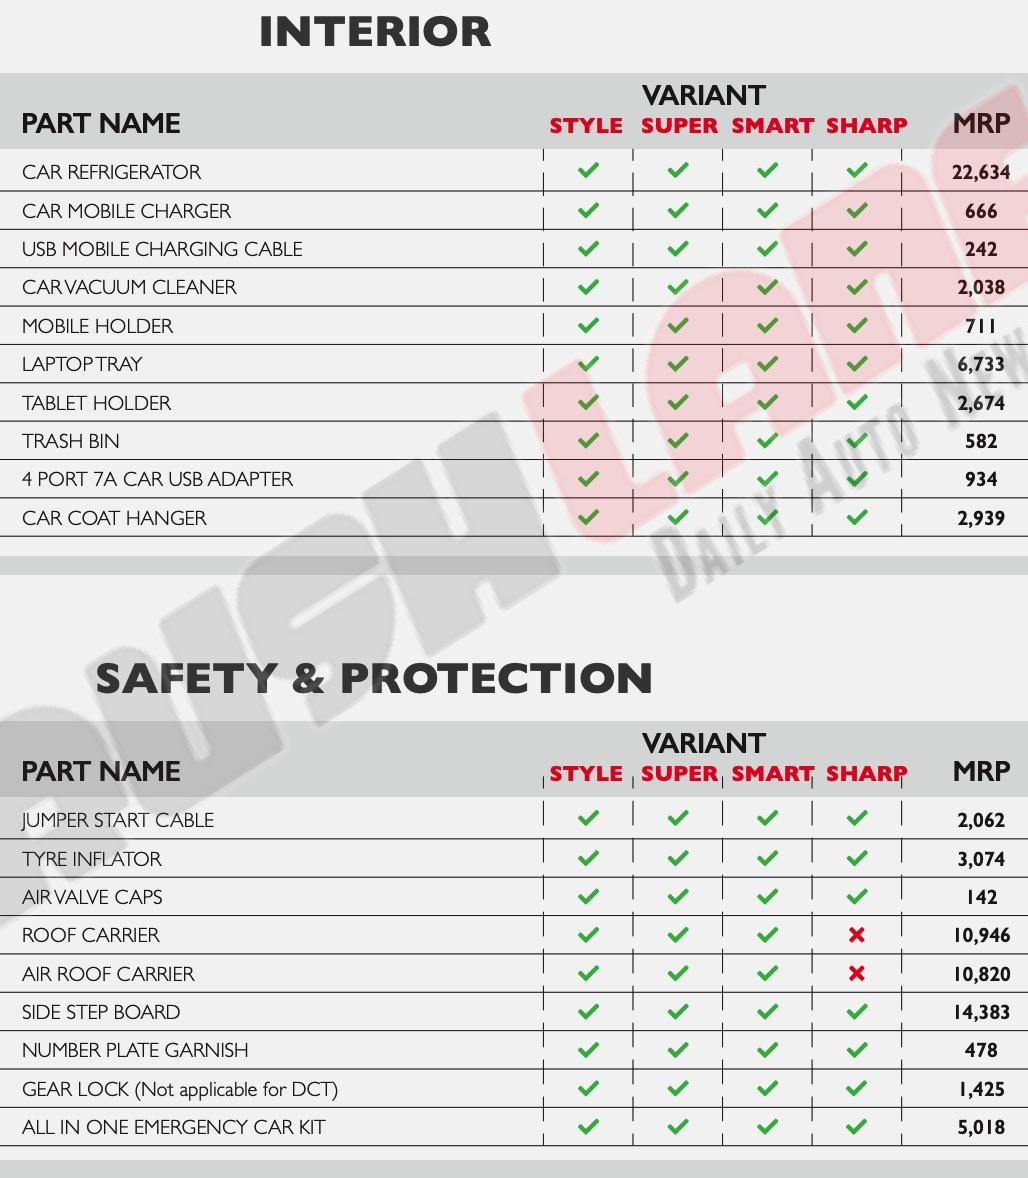 MG Hector comes with 69 genuine accessories - Price list